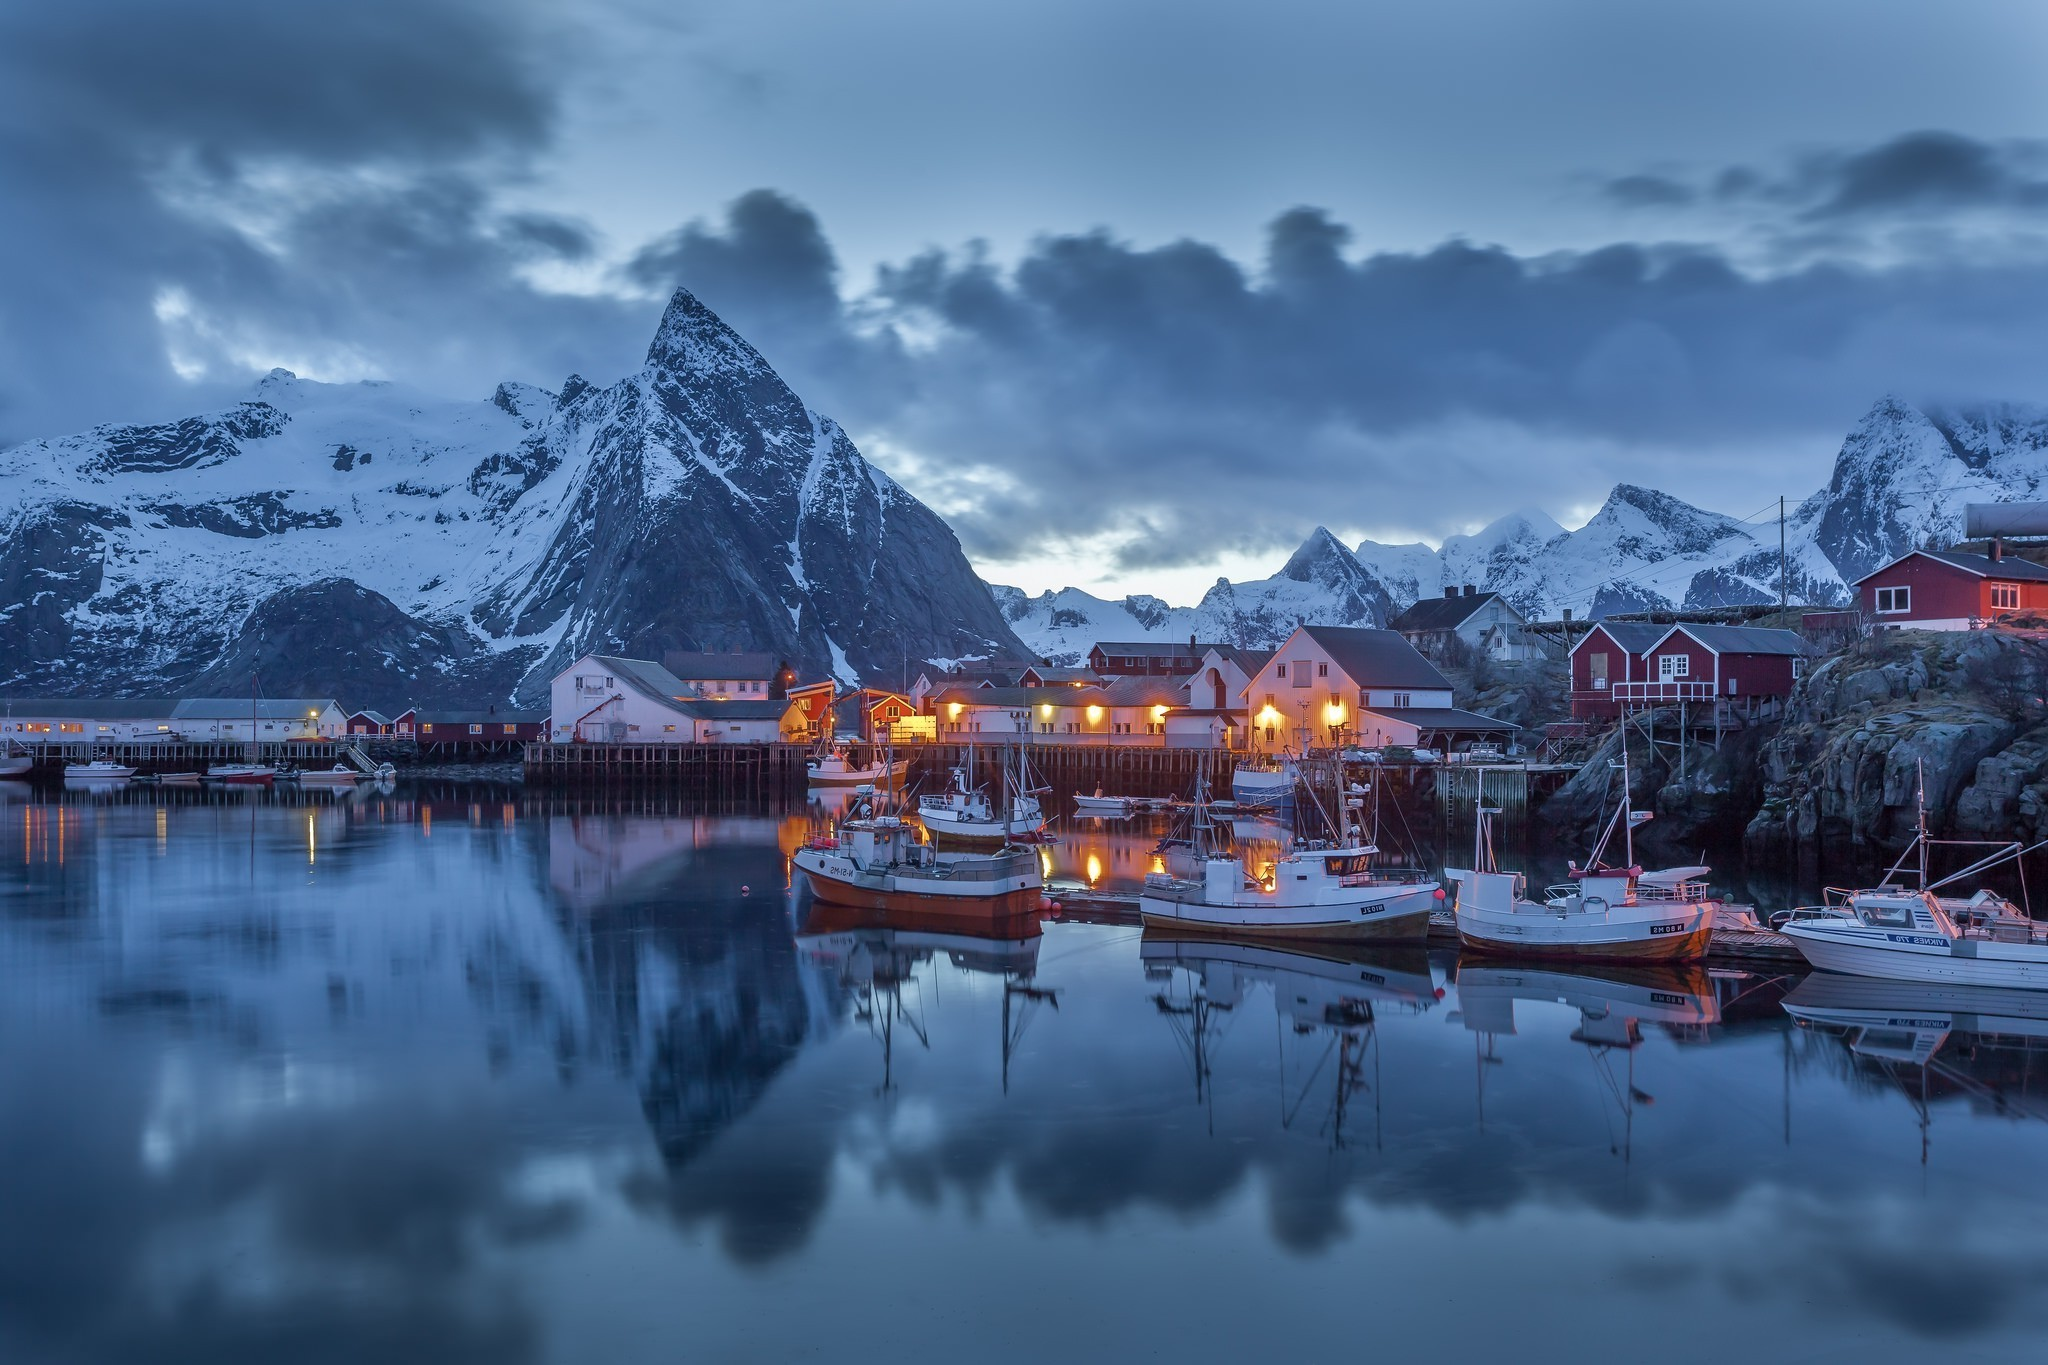 Best Wallpaper Hd For Iphone 6 Norway Wallpapers 68 Images